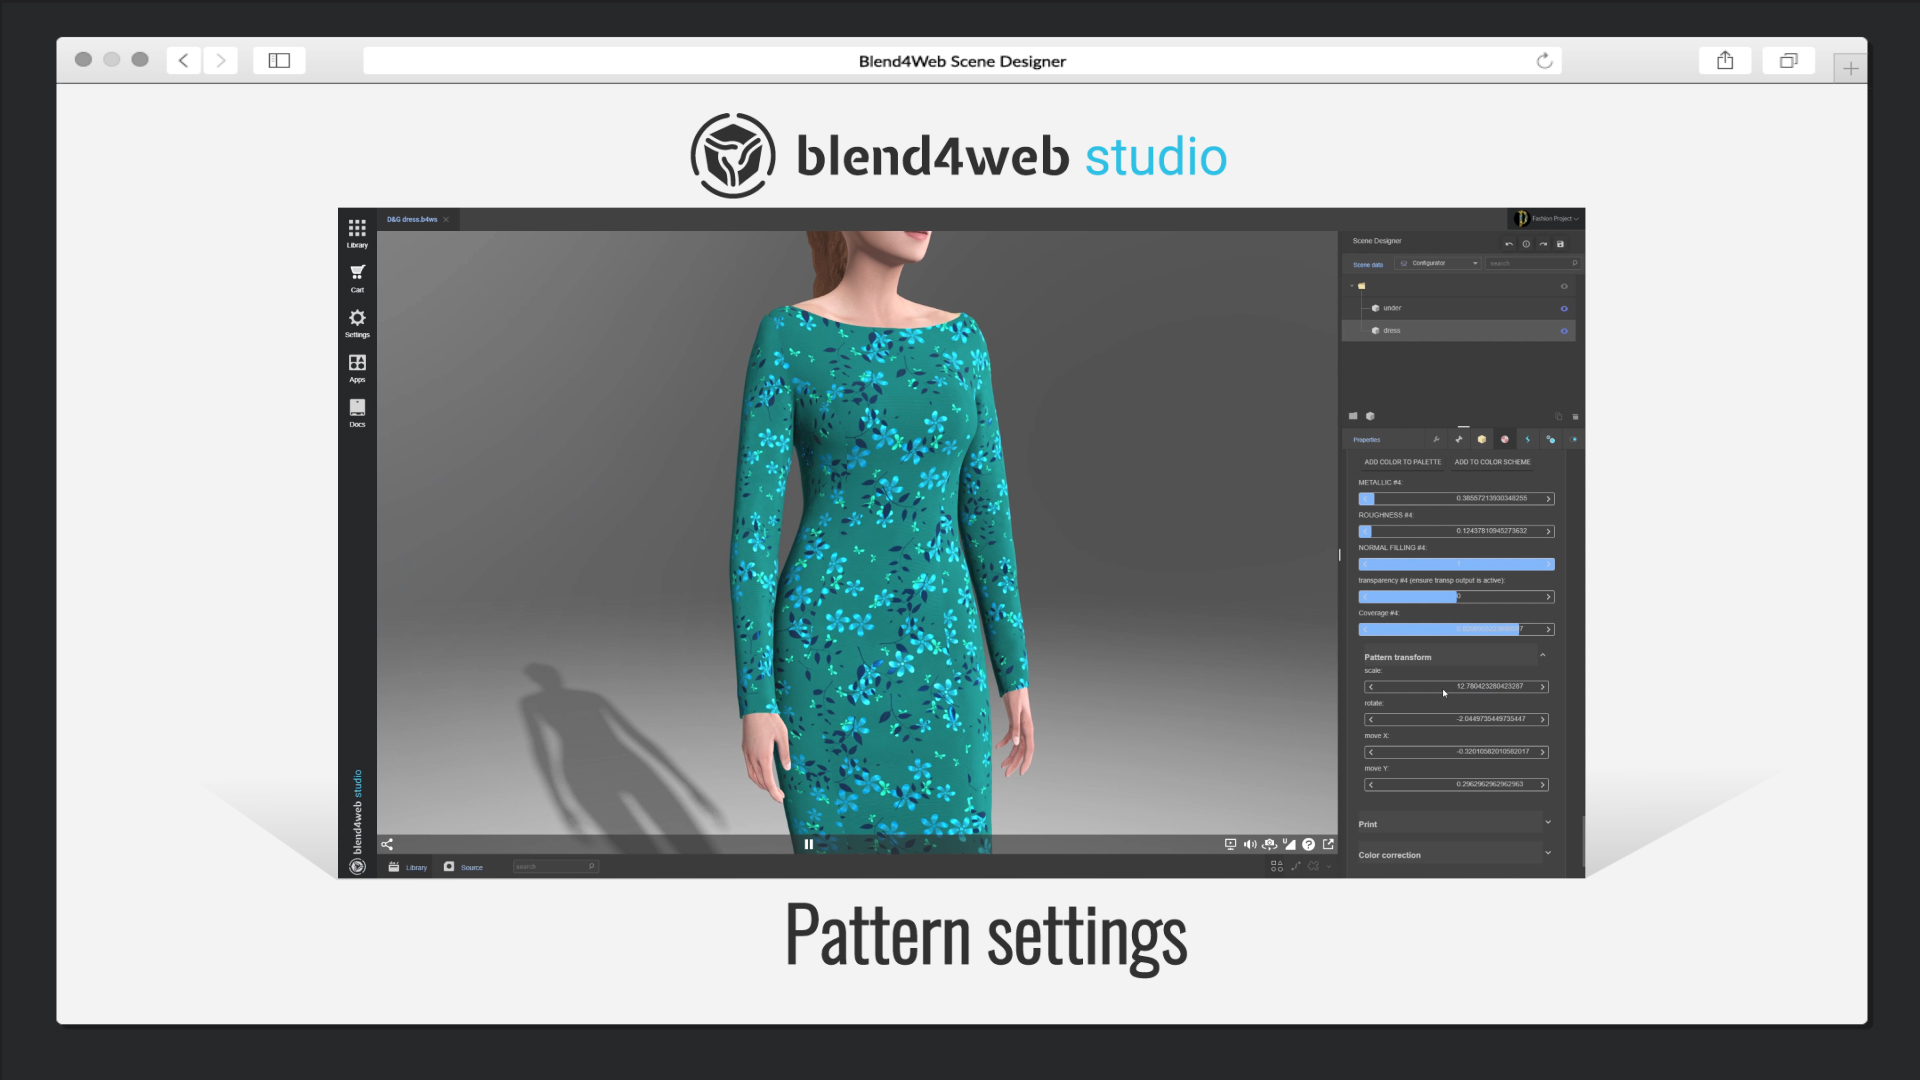 Blend4Web Studio: setting-up a pattern